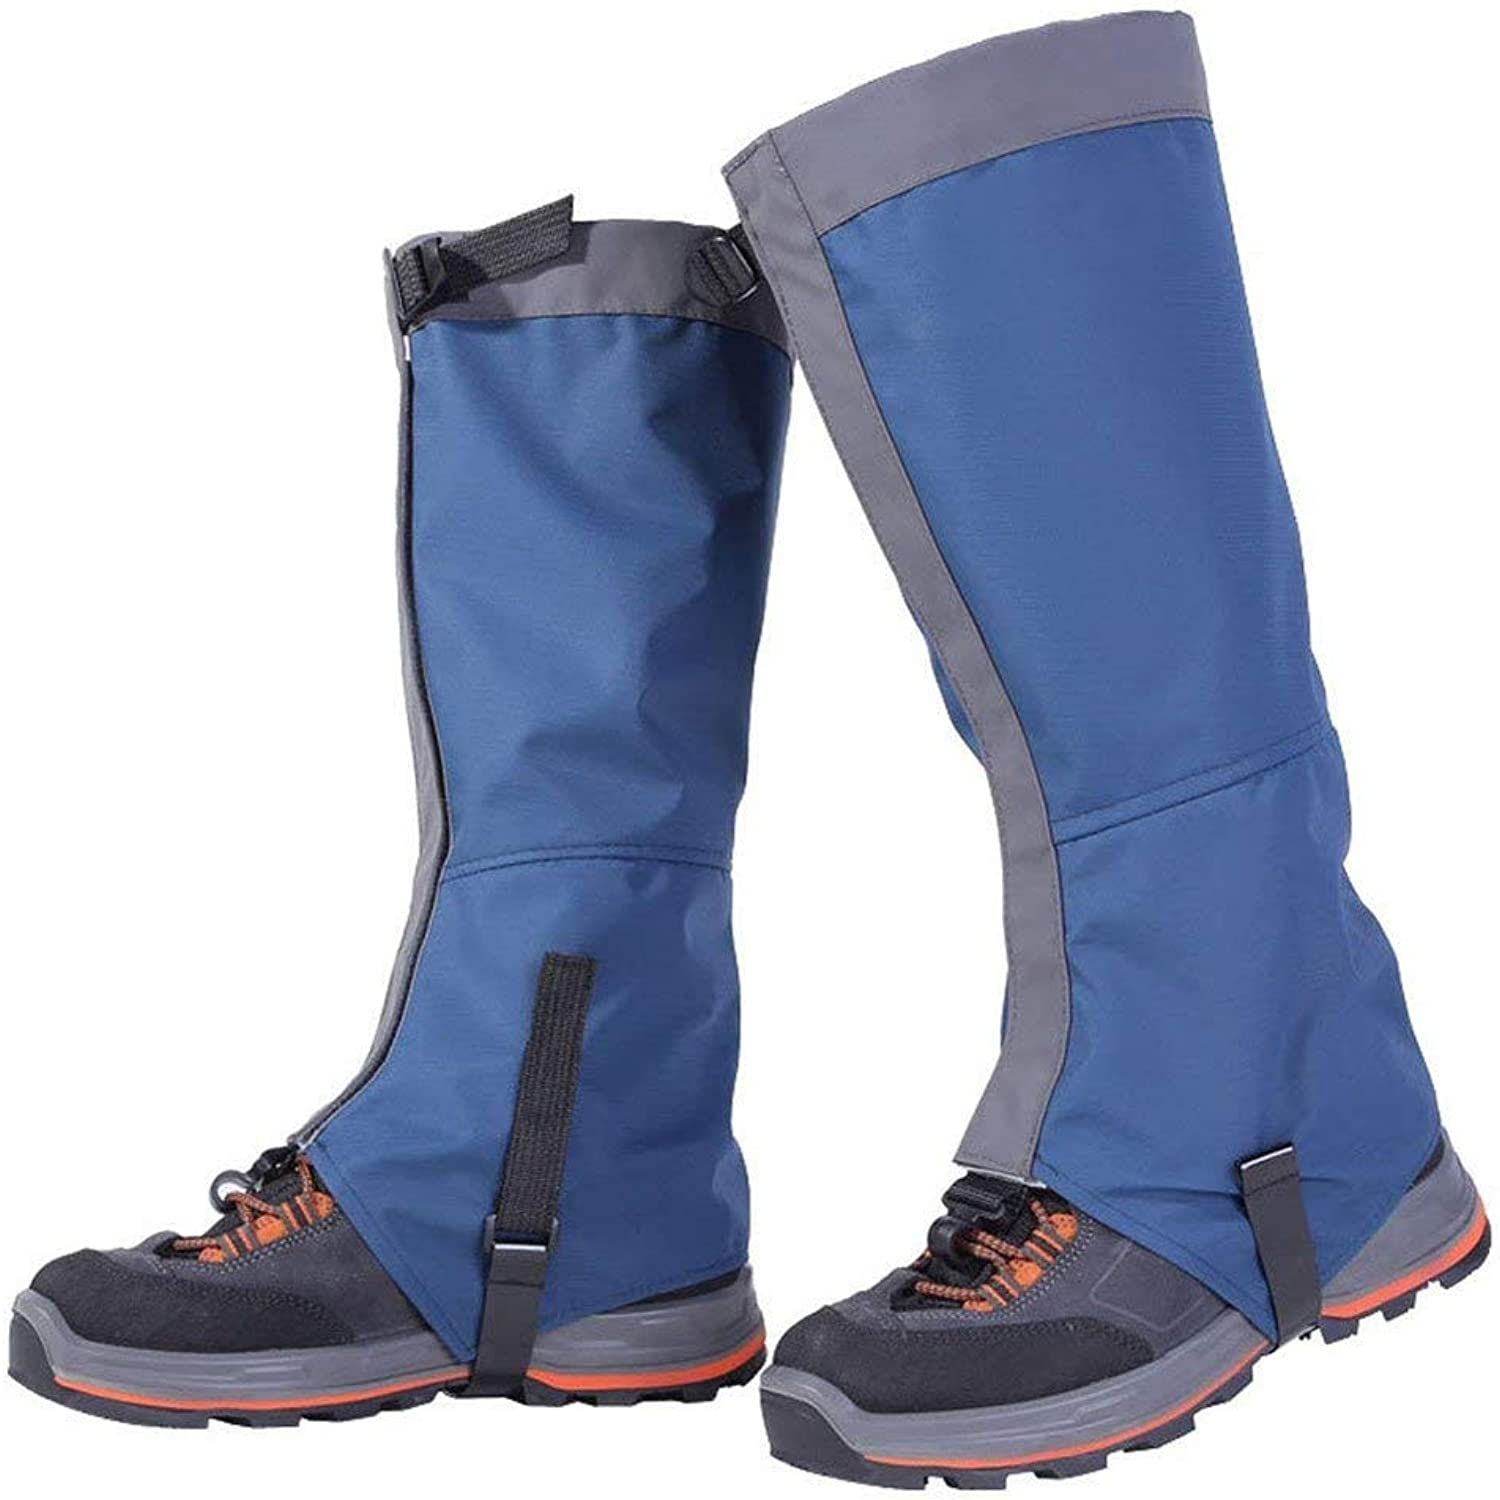 Hiking, Snow, Outdoor Skiing, Waterproof shoes, Men's and Women's Leggings Happy Together